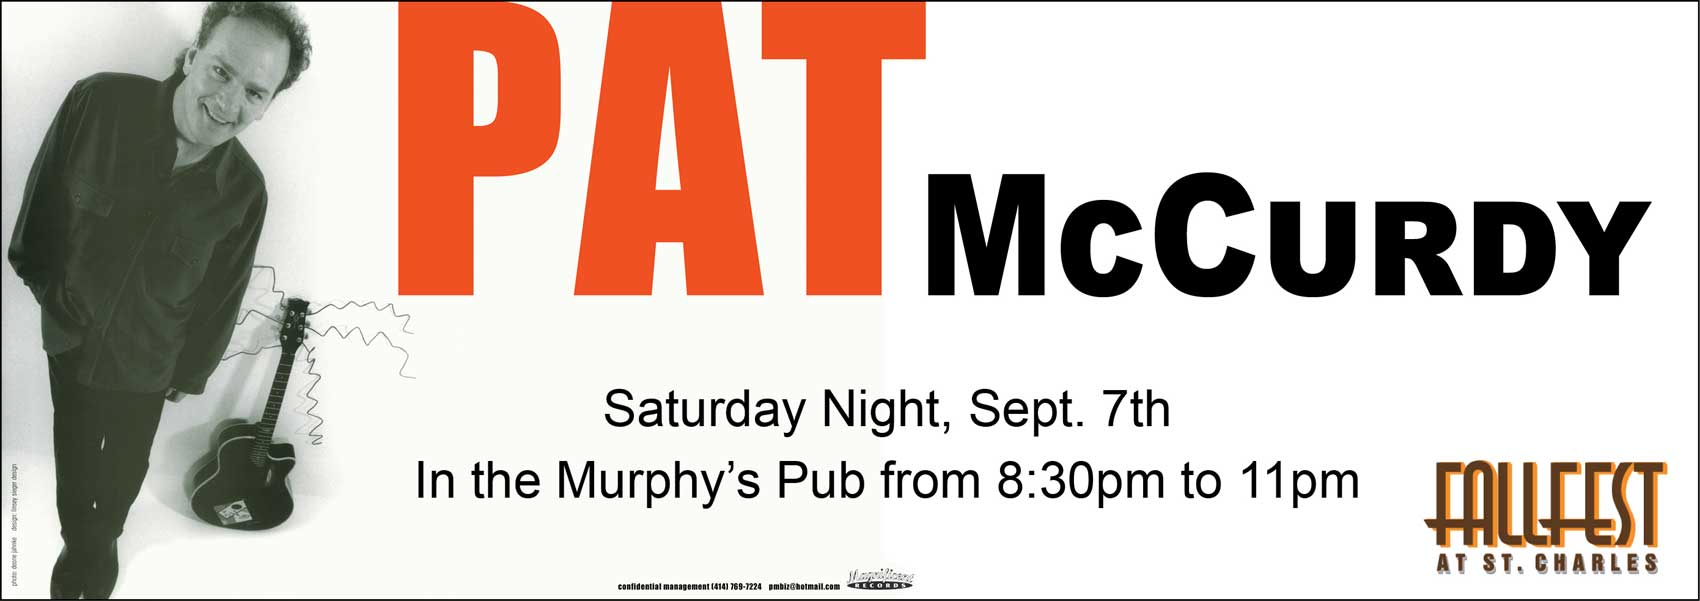 Pat McCurdy - Saturday Sept 7th - 8:30 to 11:00pm - Murphy's Pub